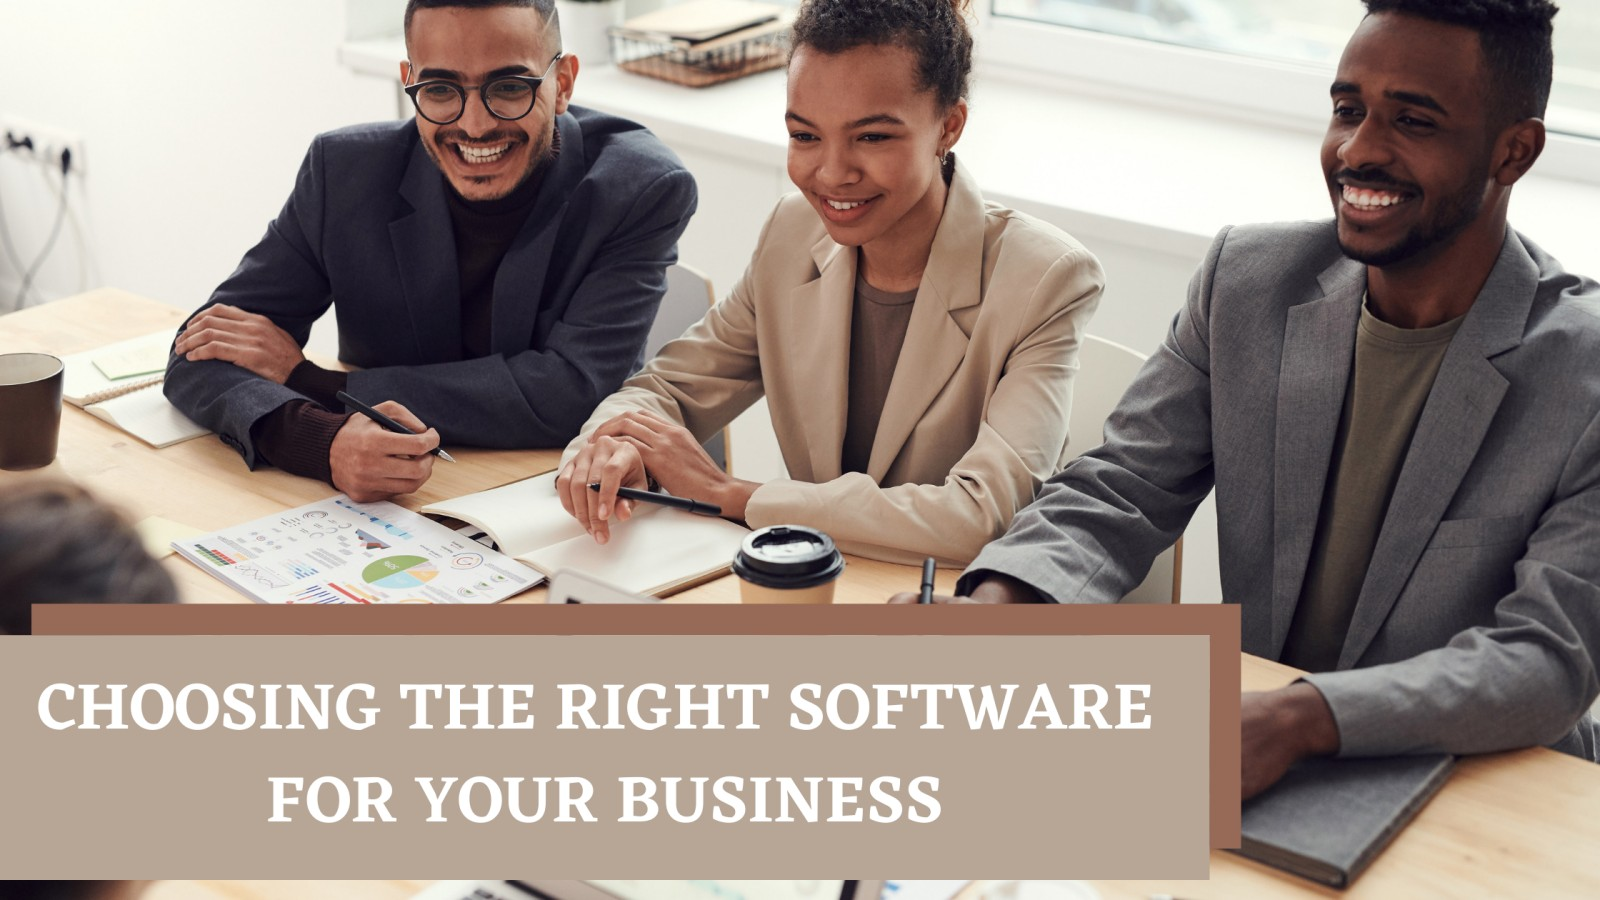 Choosing the Right Software For Your Business